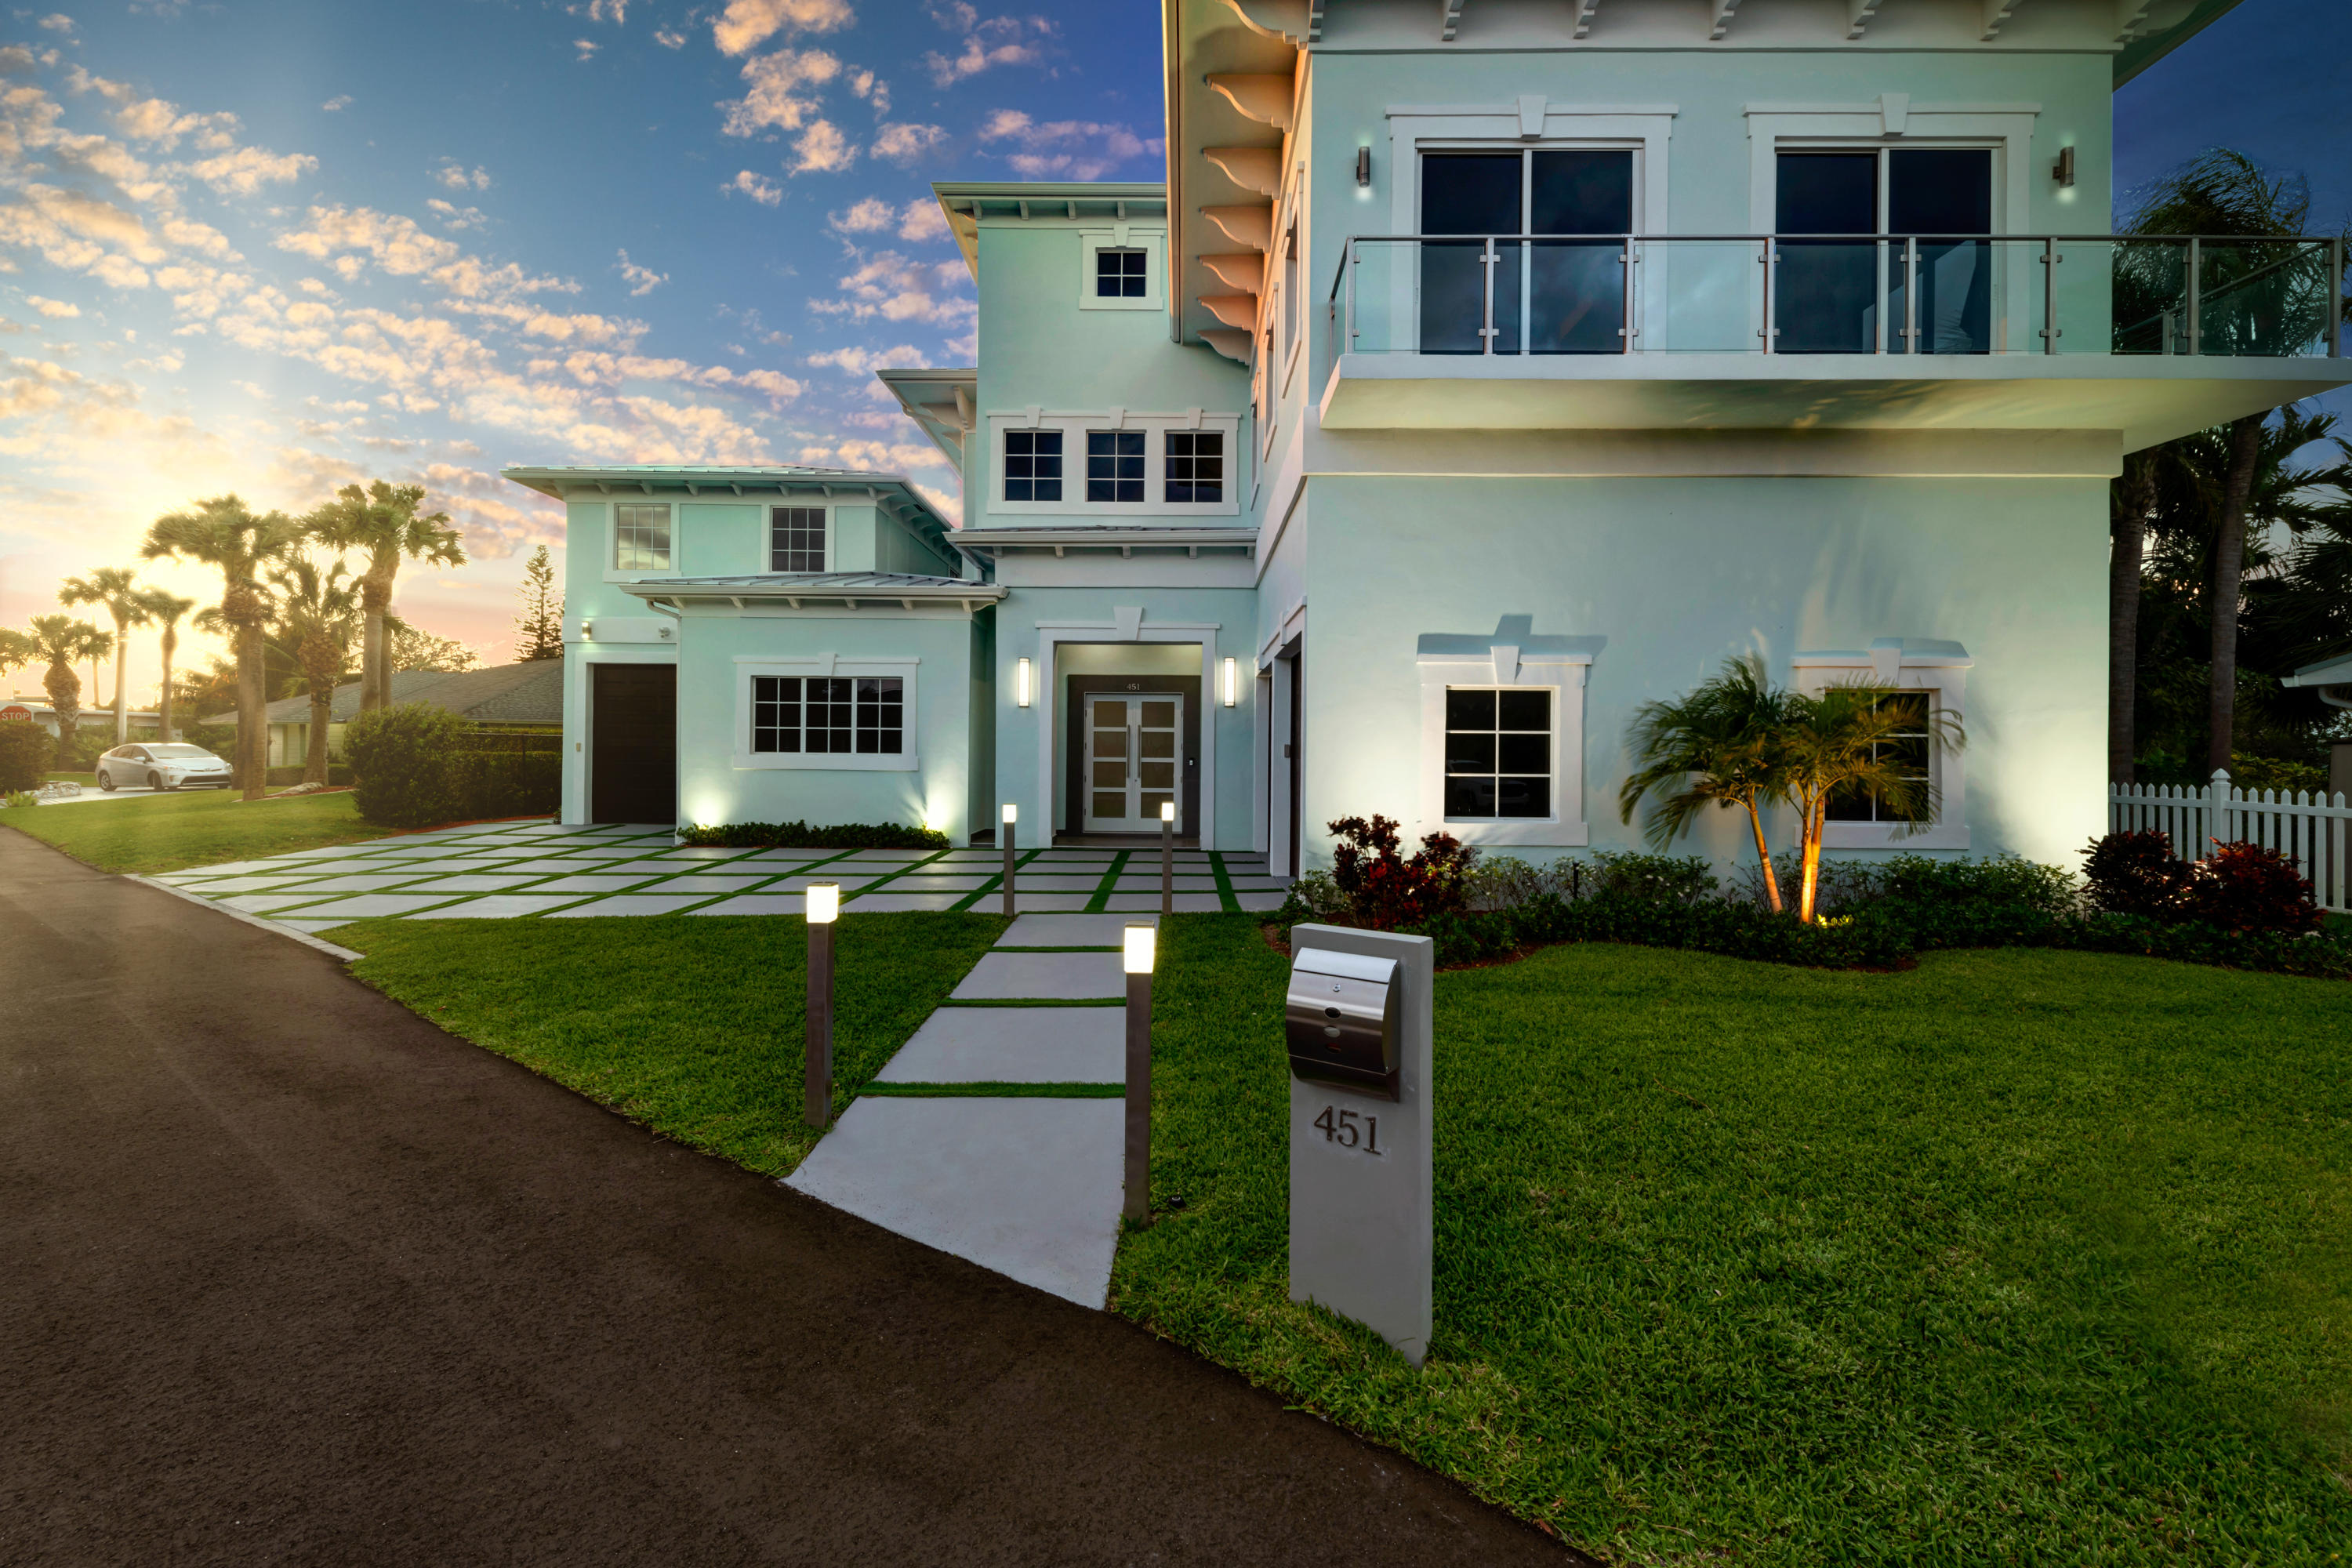 New Home for sale at 451 Juno Lane in Juno Beach